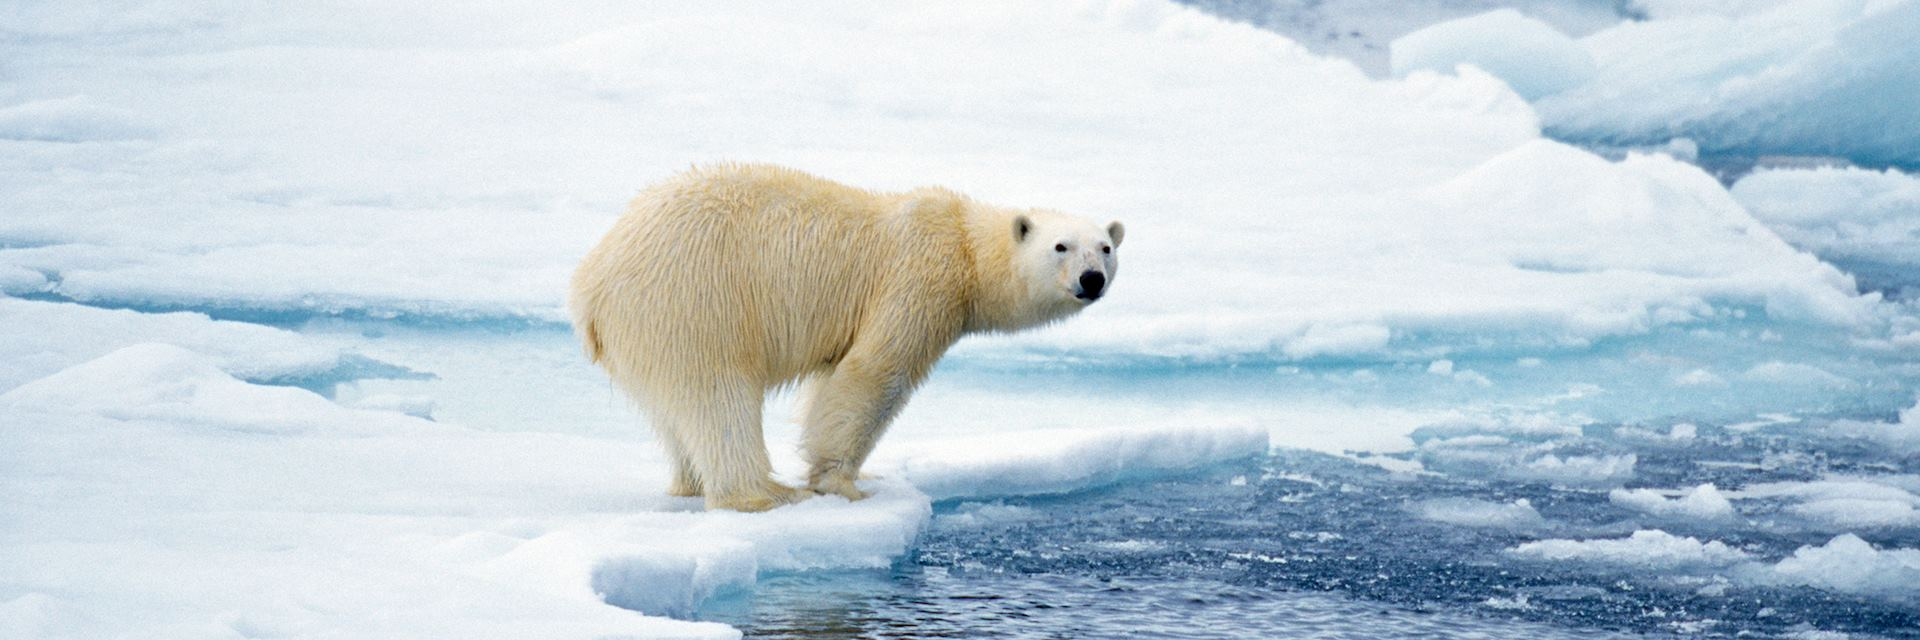 Polar bear about to dive into the Arctic's icy waters